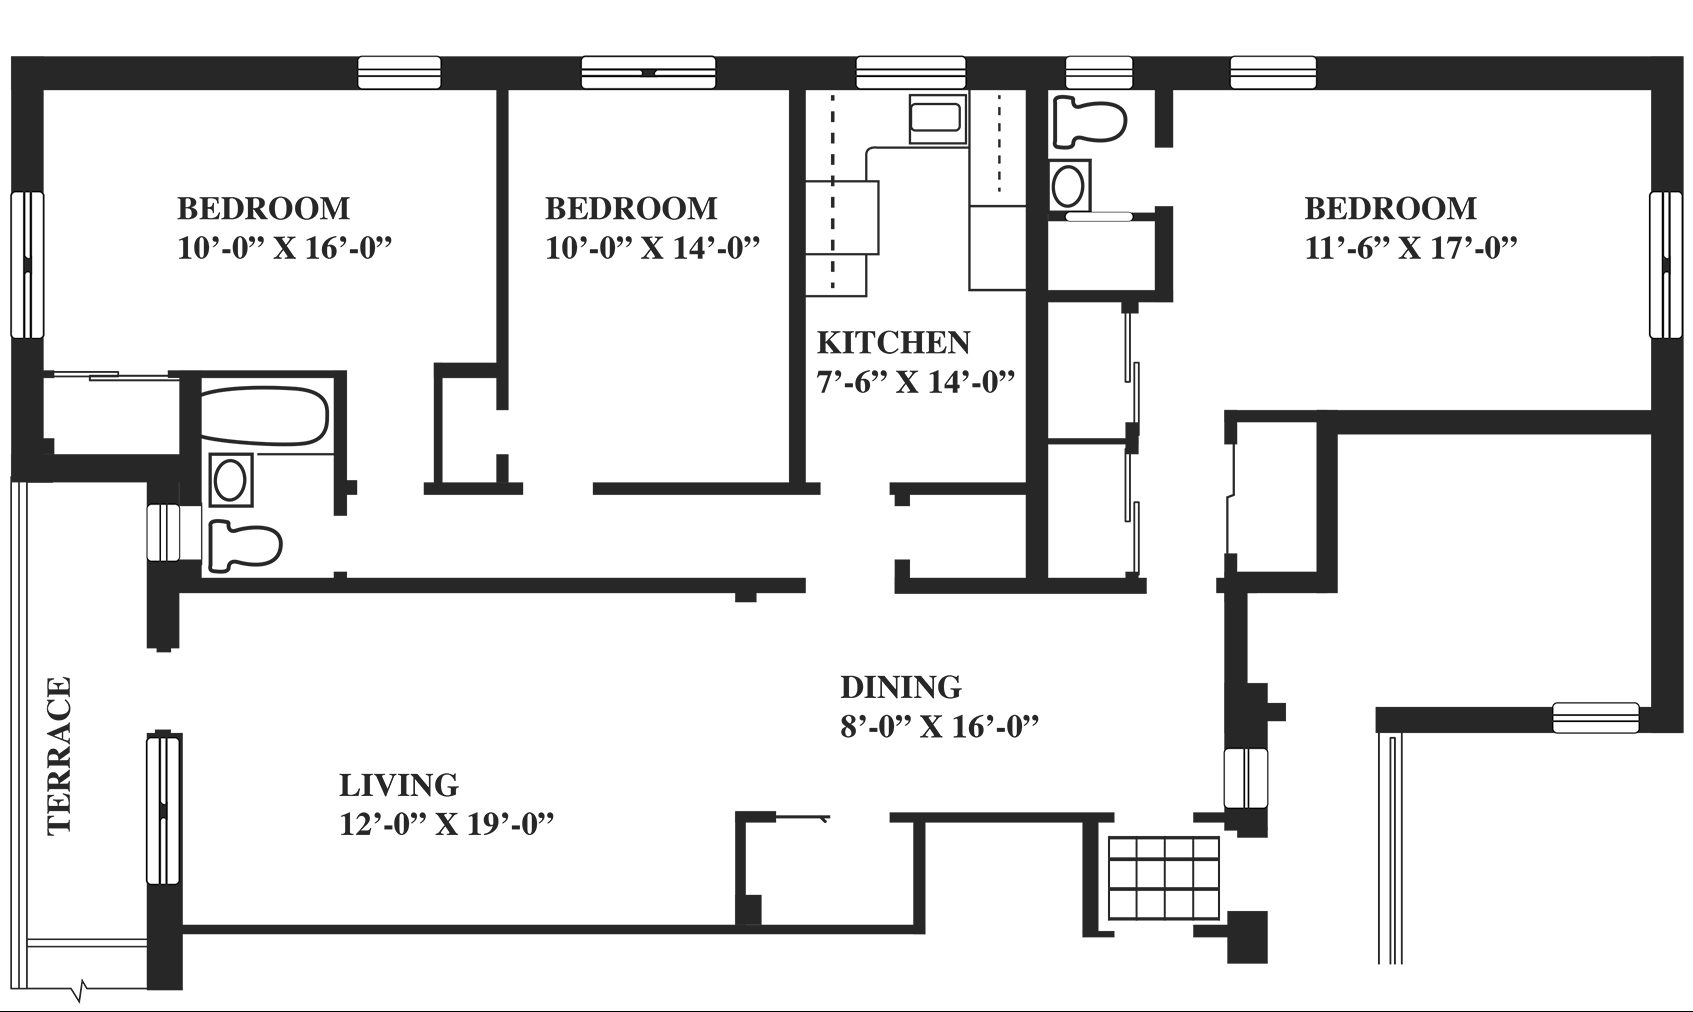 Floor Plans  3 Bedrooms  Greenwich Close Apartments